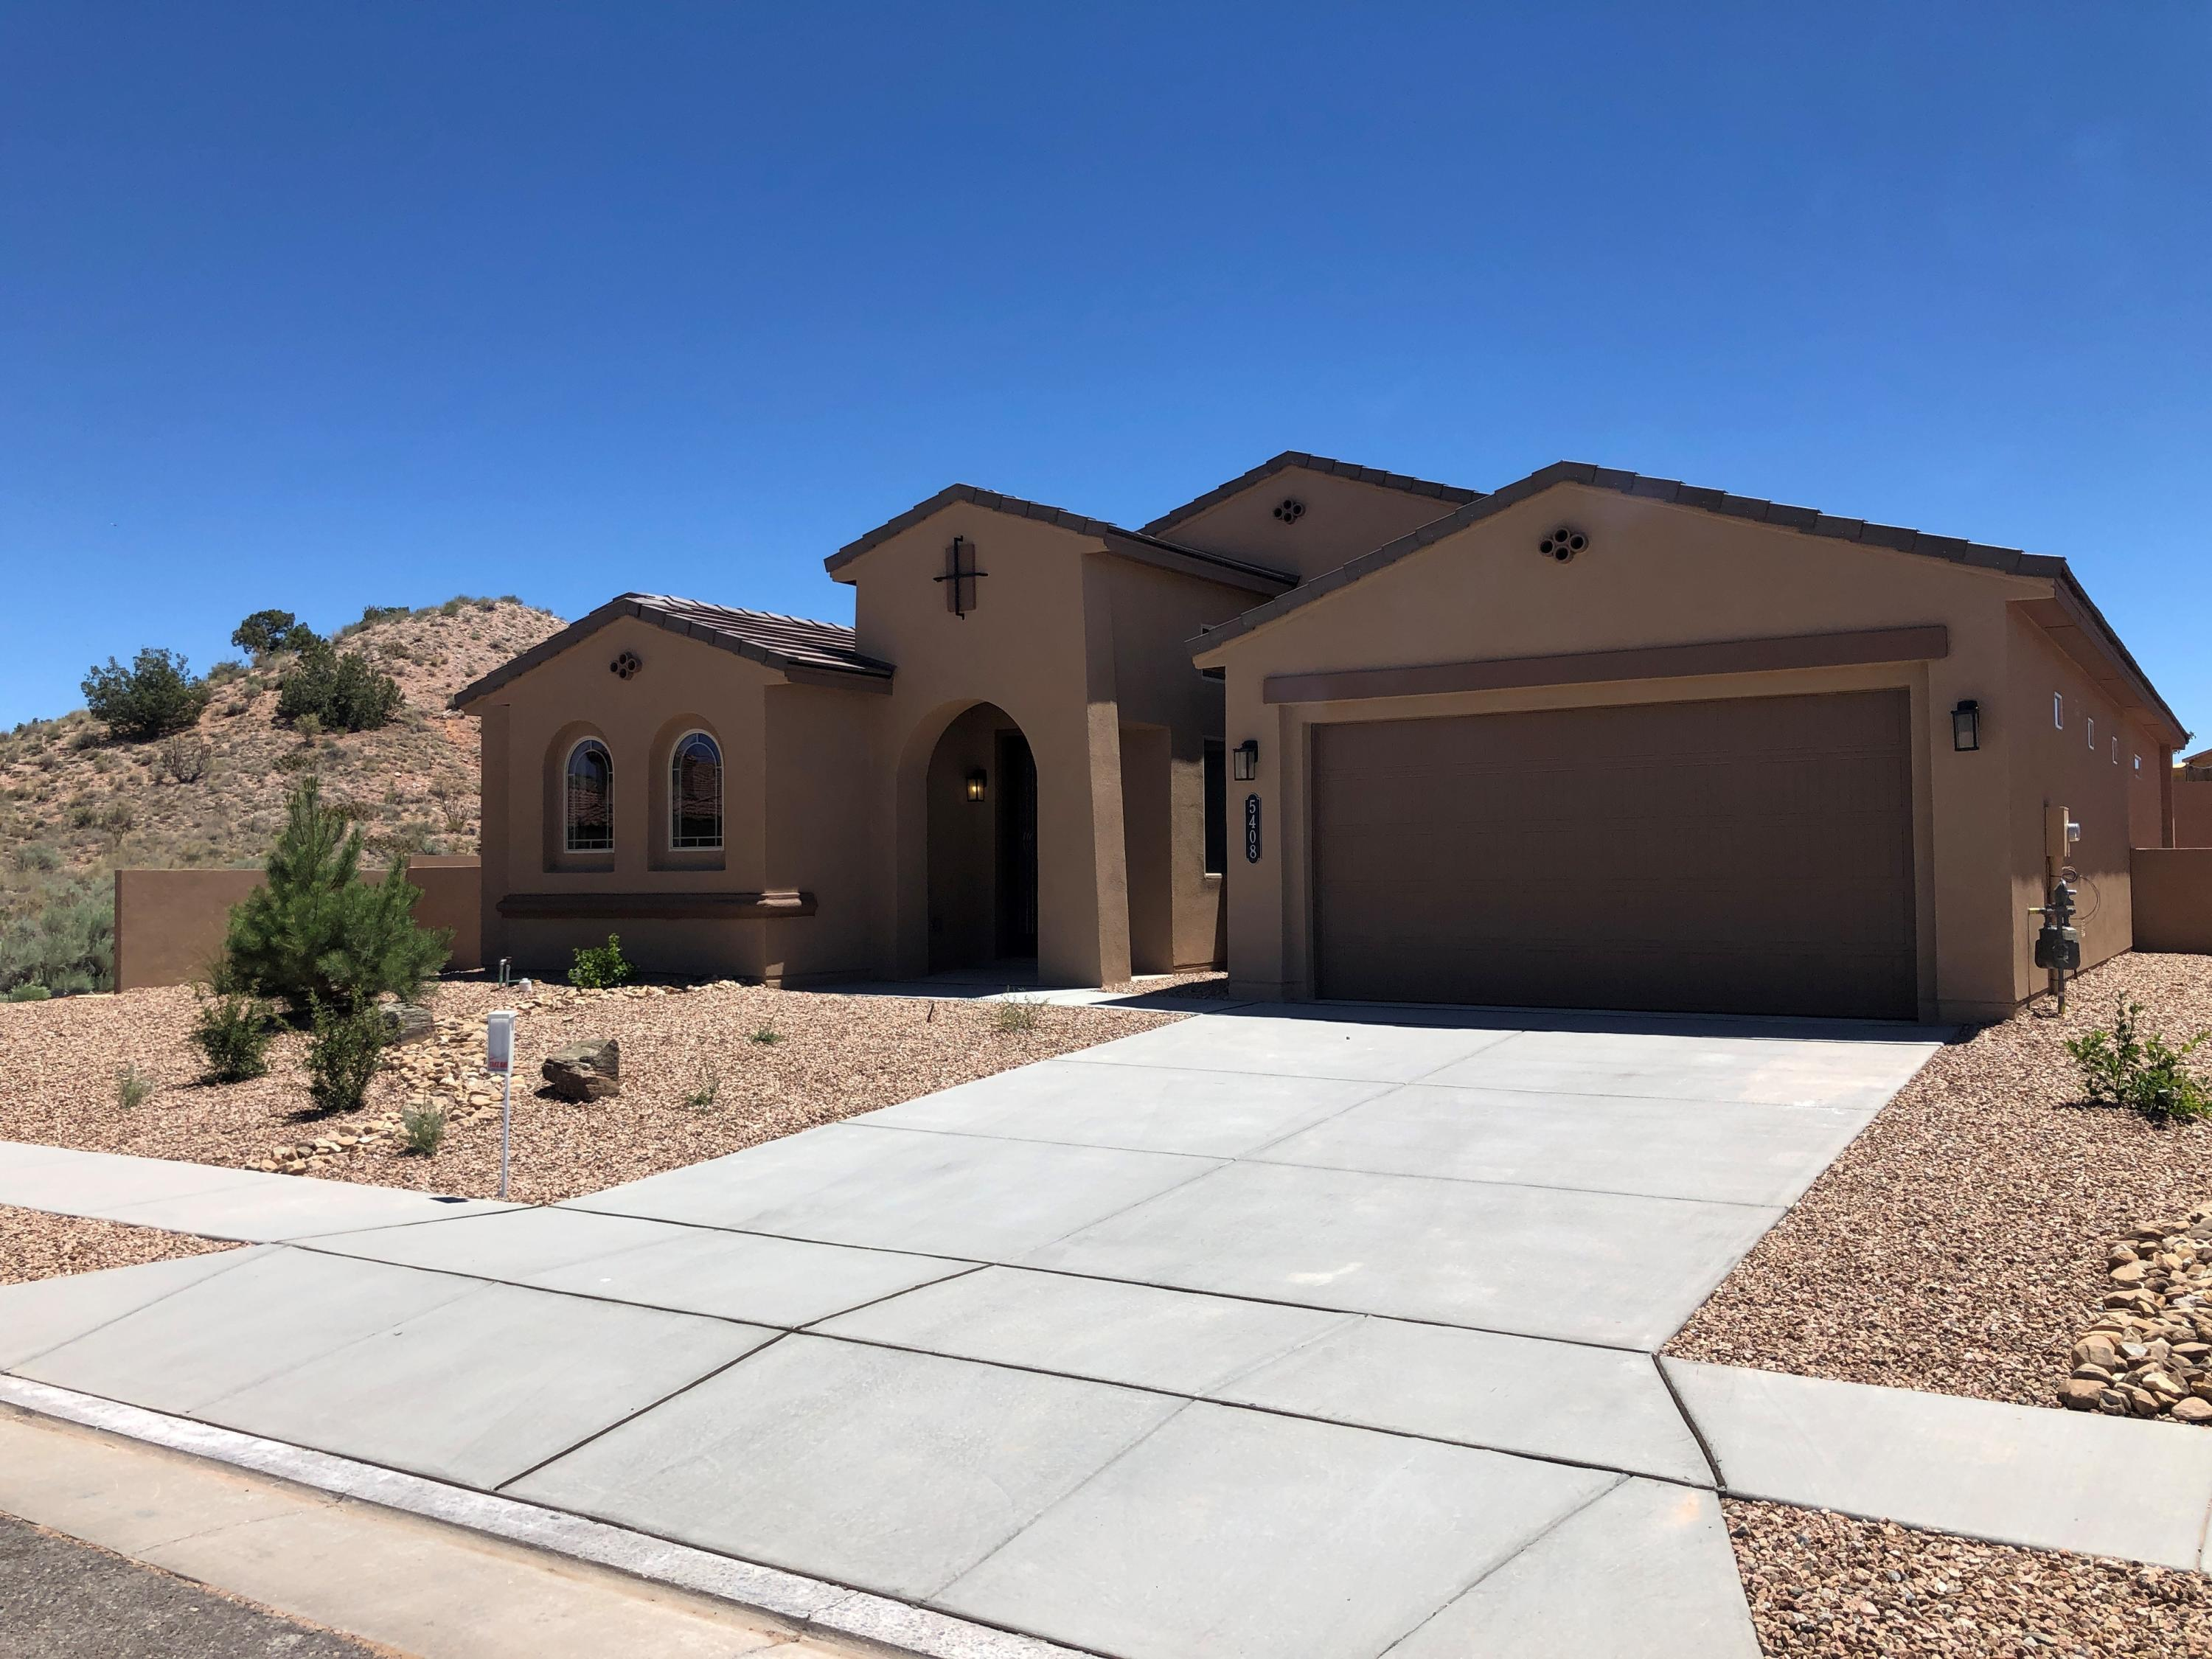 This beautiful Buxton floorplan sits on an over-sized, 83 foot lot at The Peaks in fabulous Mariposa. The open living area has lots of natural light and is an entertainers delight. Kitchen has granite counters and island. Whirlpool stainless appliances include: 5-burner cooktop, vent, dishwasher and built-in oven and microwave. New Mexico Green Built And a SMART HOME. Enjoy the lifestyle of a Private Community Center that offers indoor and outdoor pools, parks, fitness center, full time activity director, and miles of hiking/biking trails. It's all about Lifestyle at beautiful Mariposa.